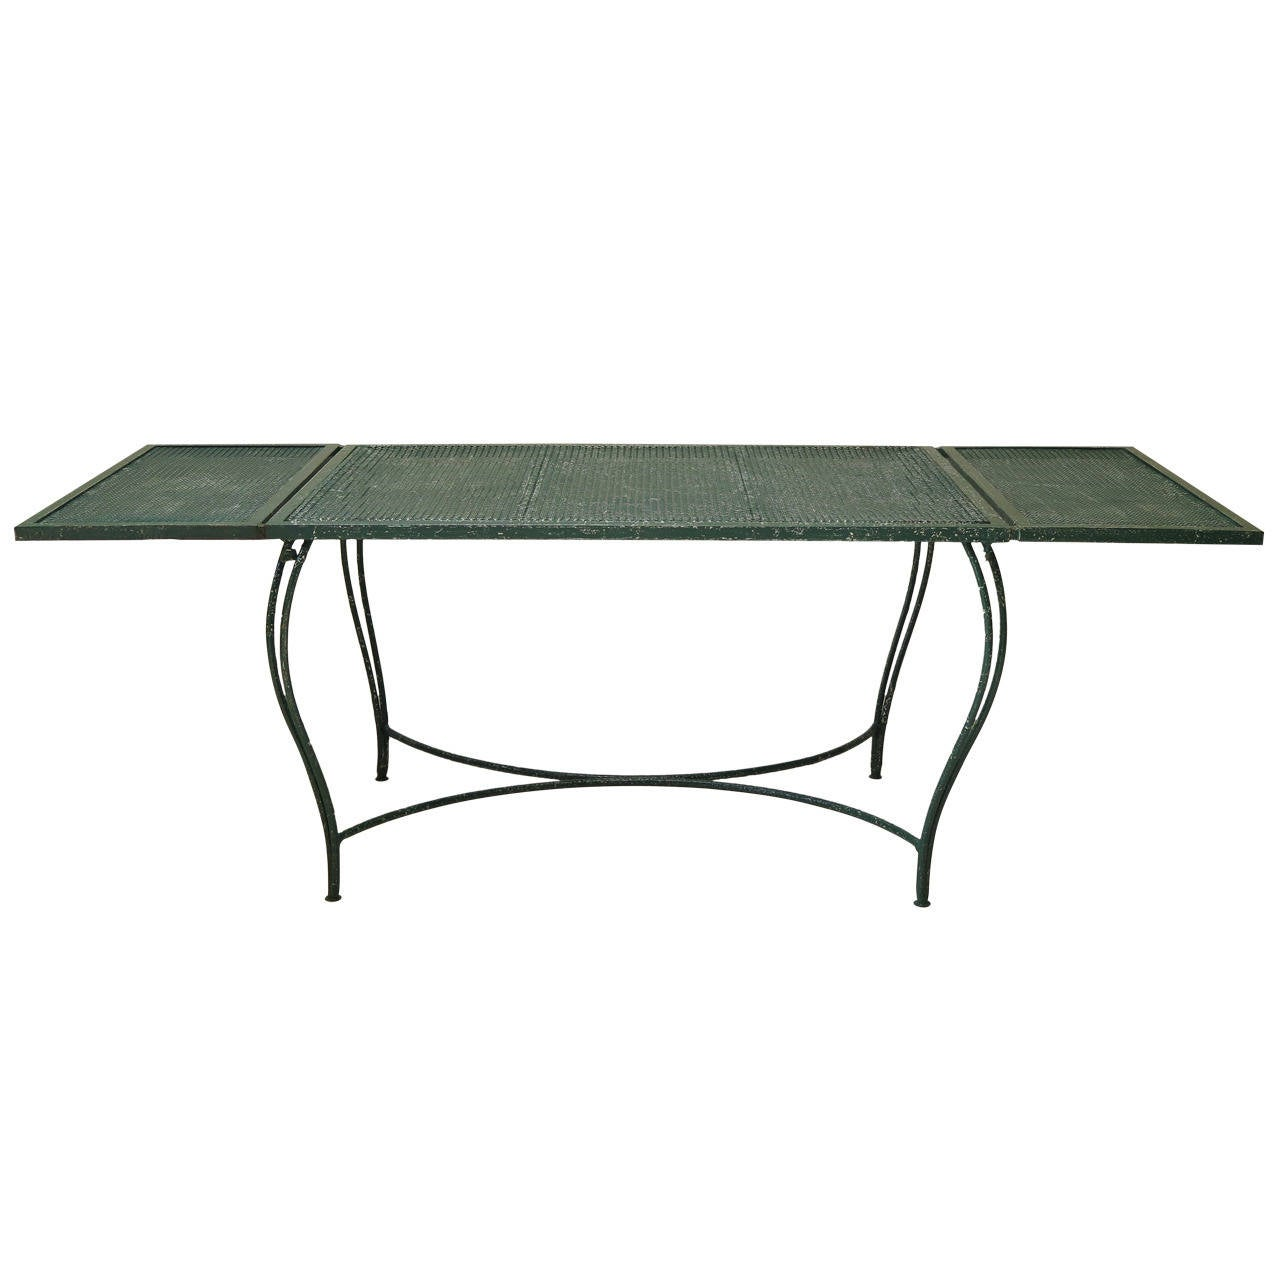 Wrought Iron Garden Dining Table France 1950s For Sale At 1stdibs